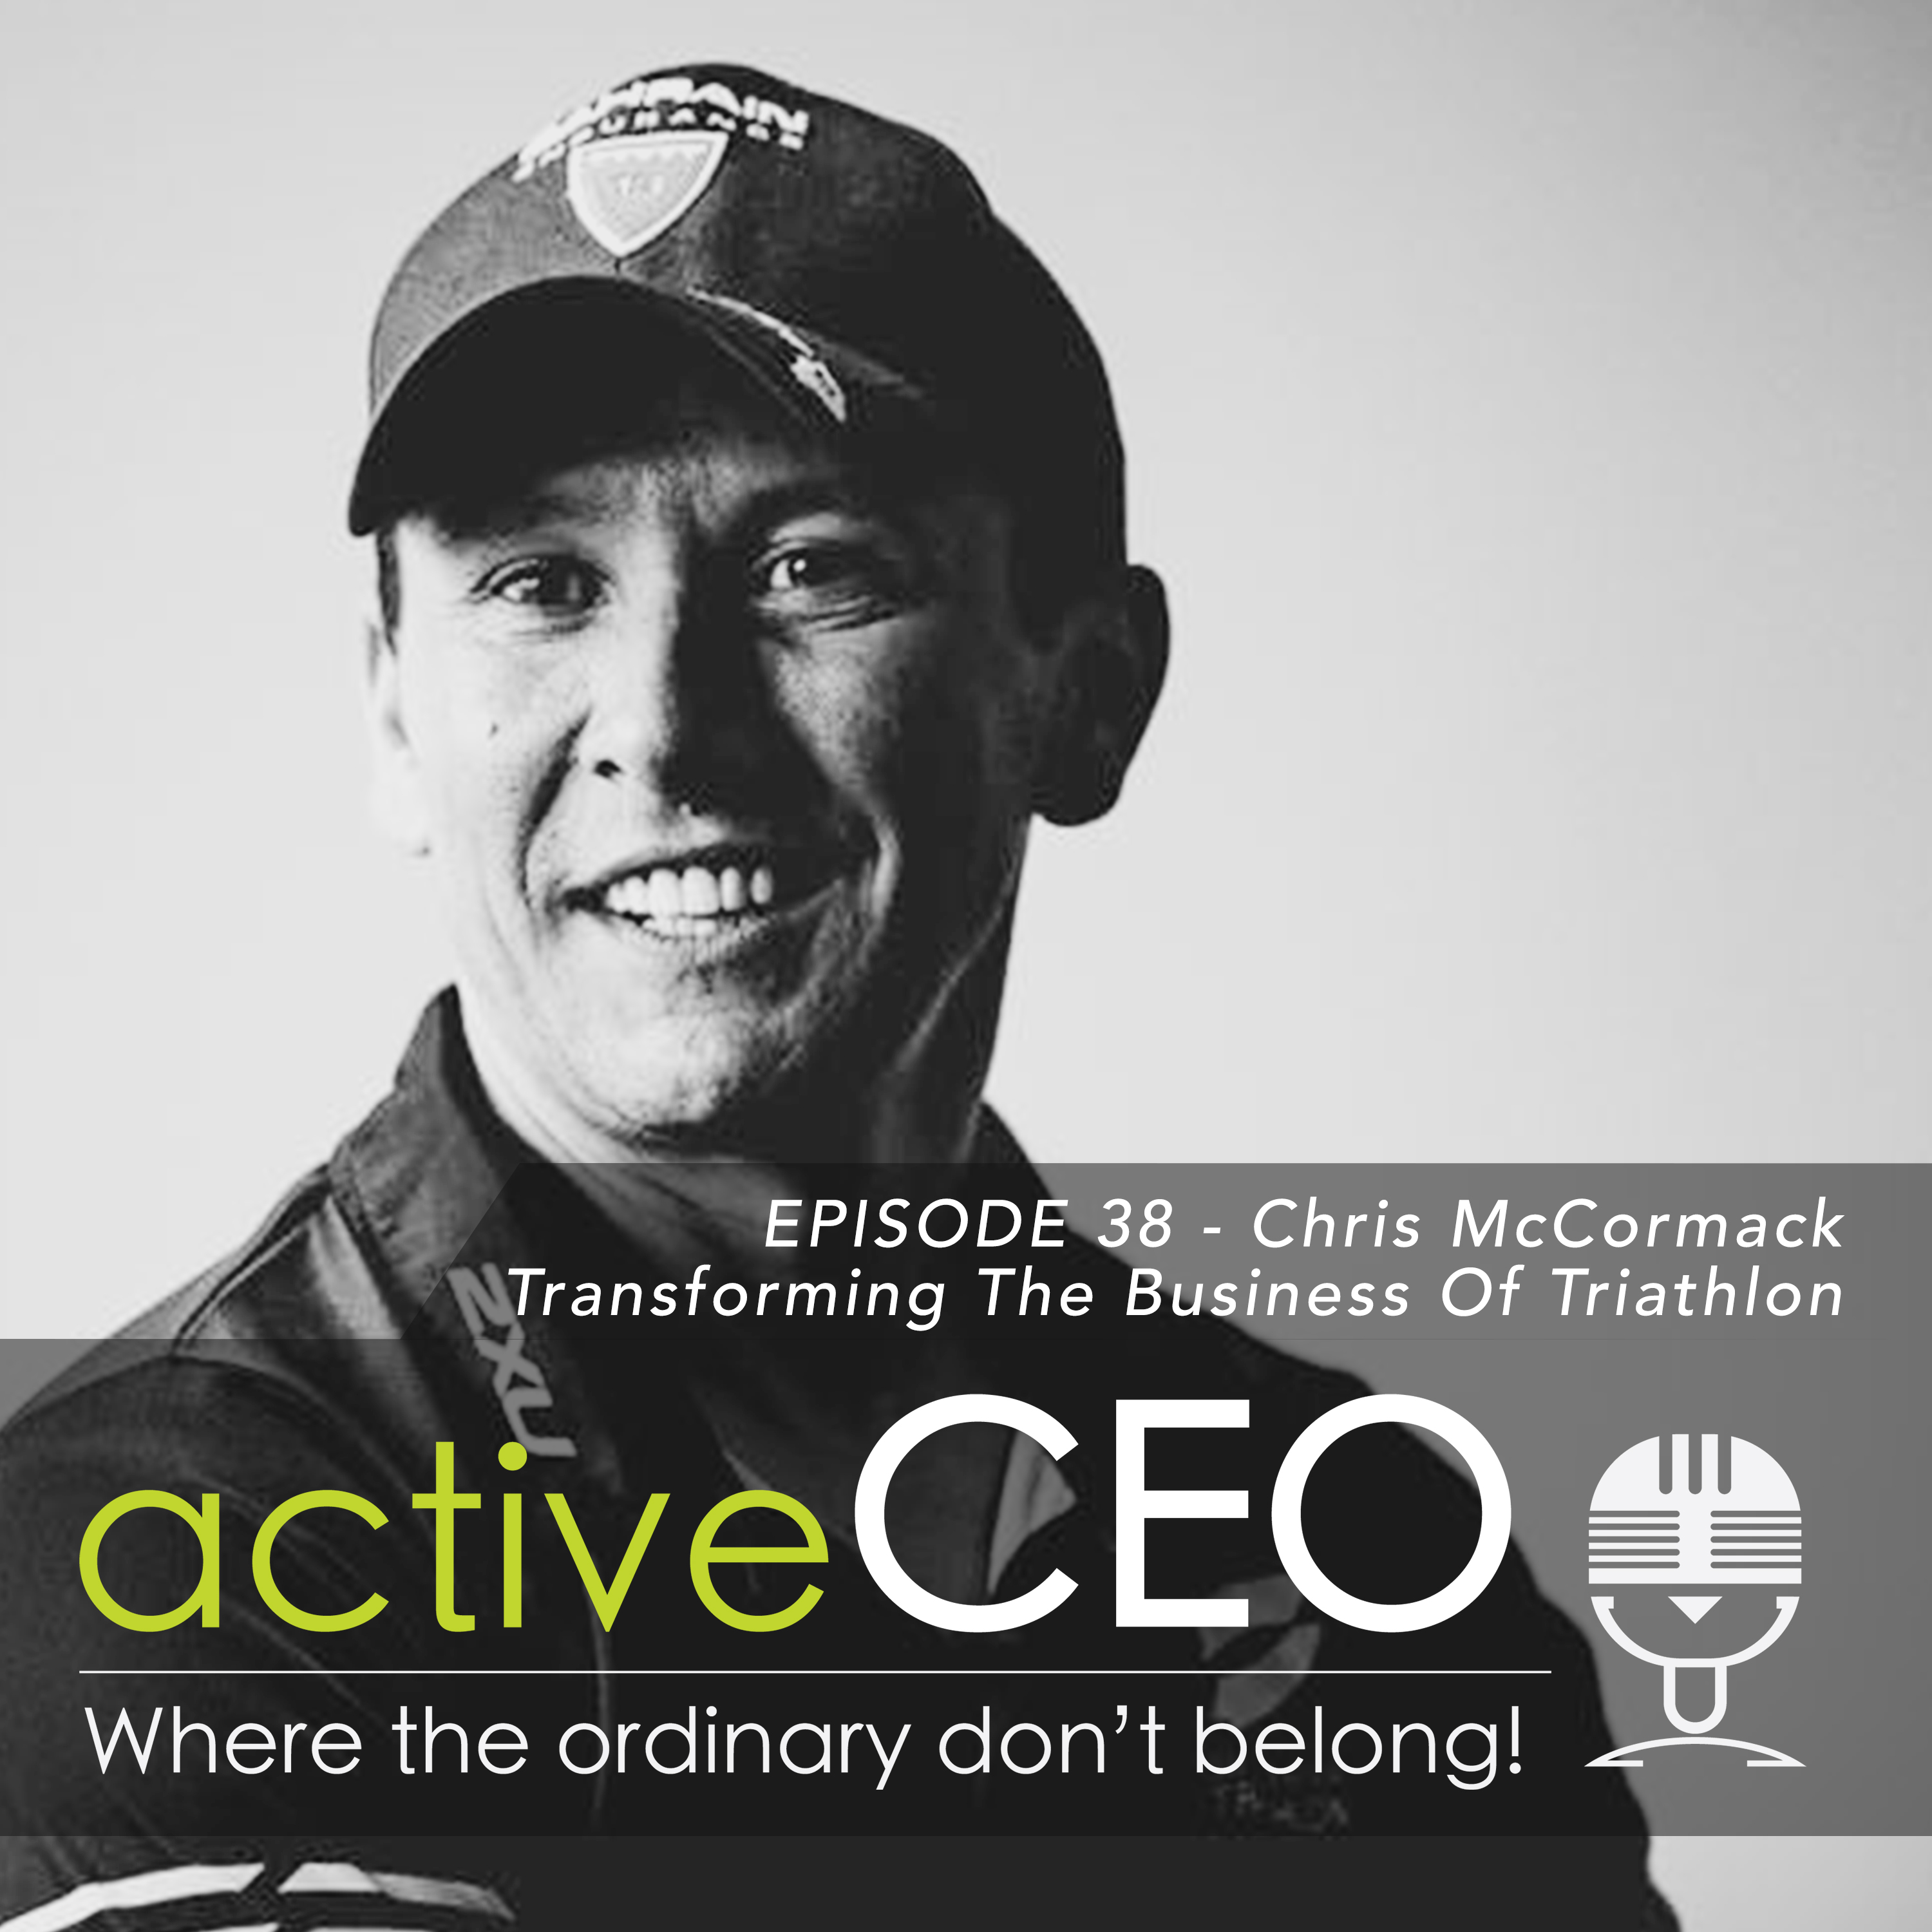 active CEO Podcast Chris McCormack (Super League Triathlon) – Transforming The Business of Triathlon